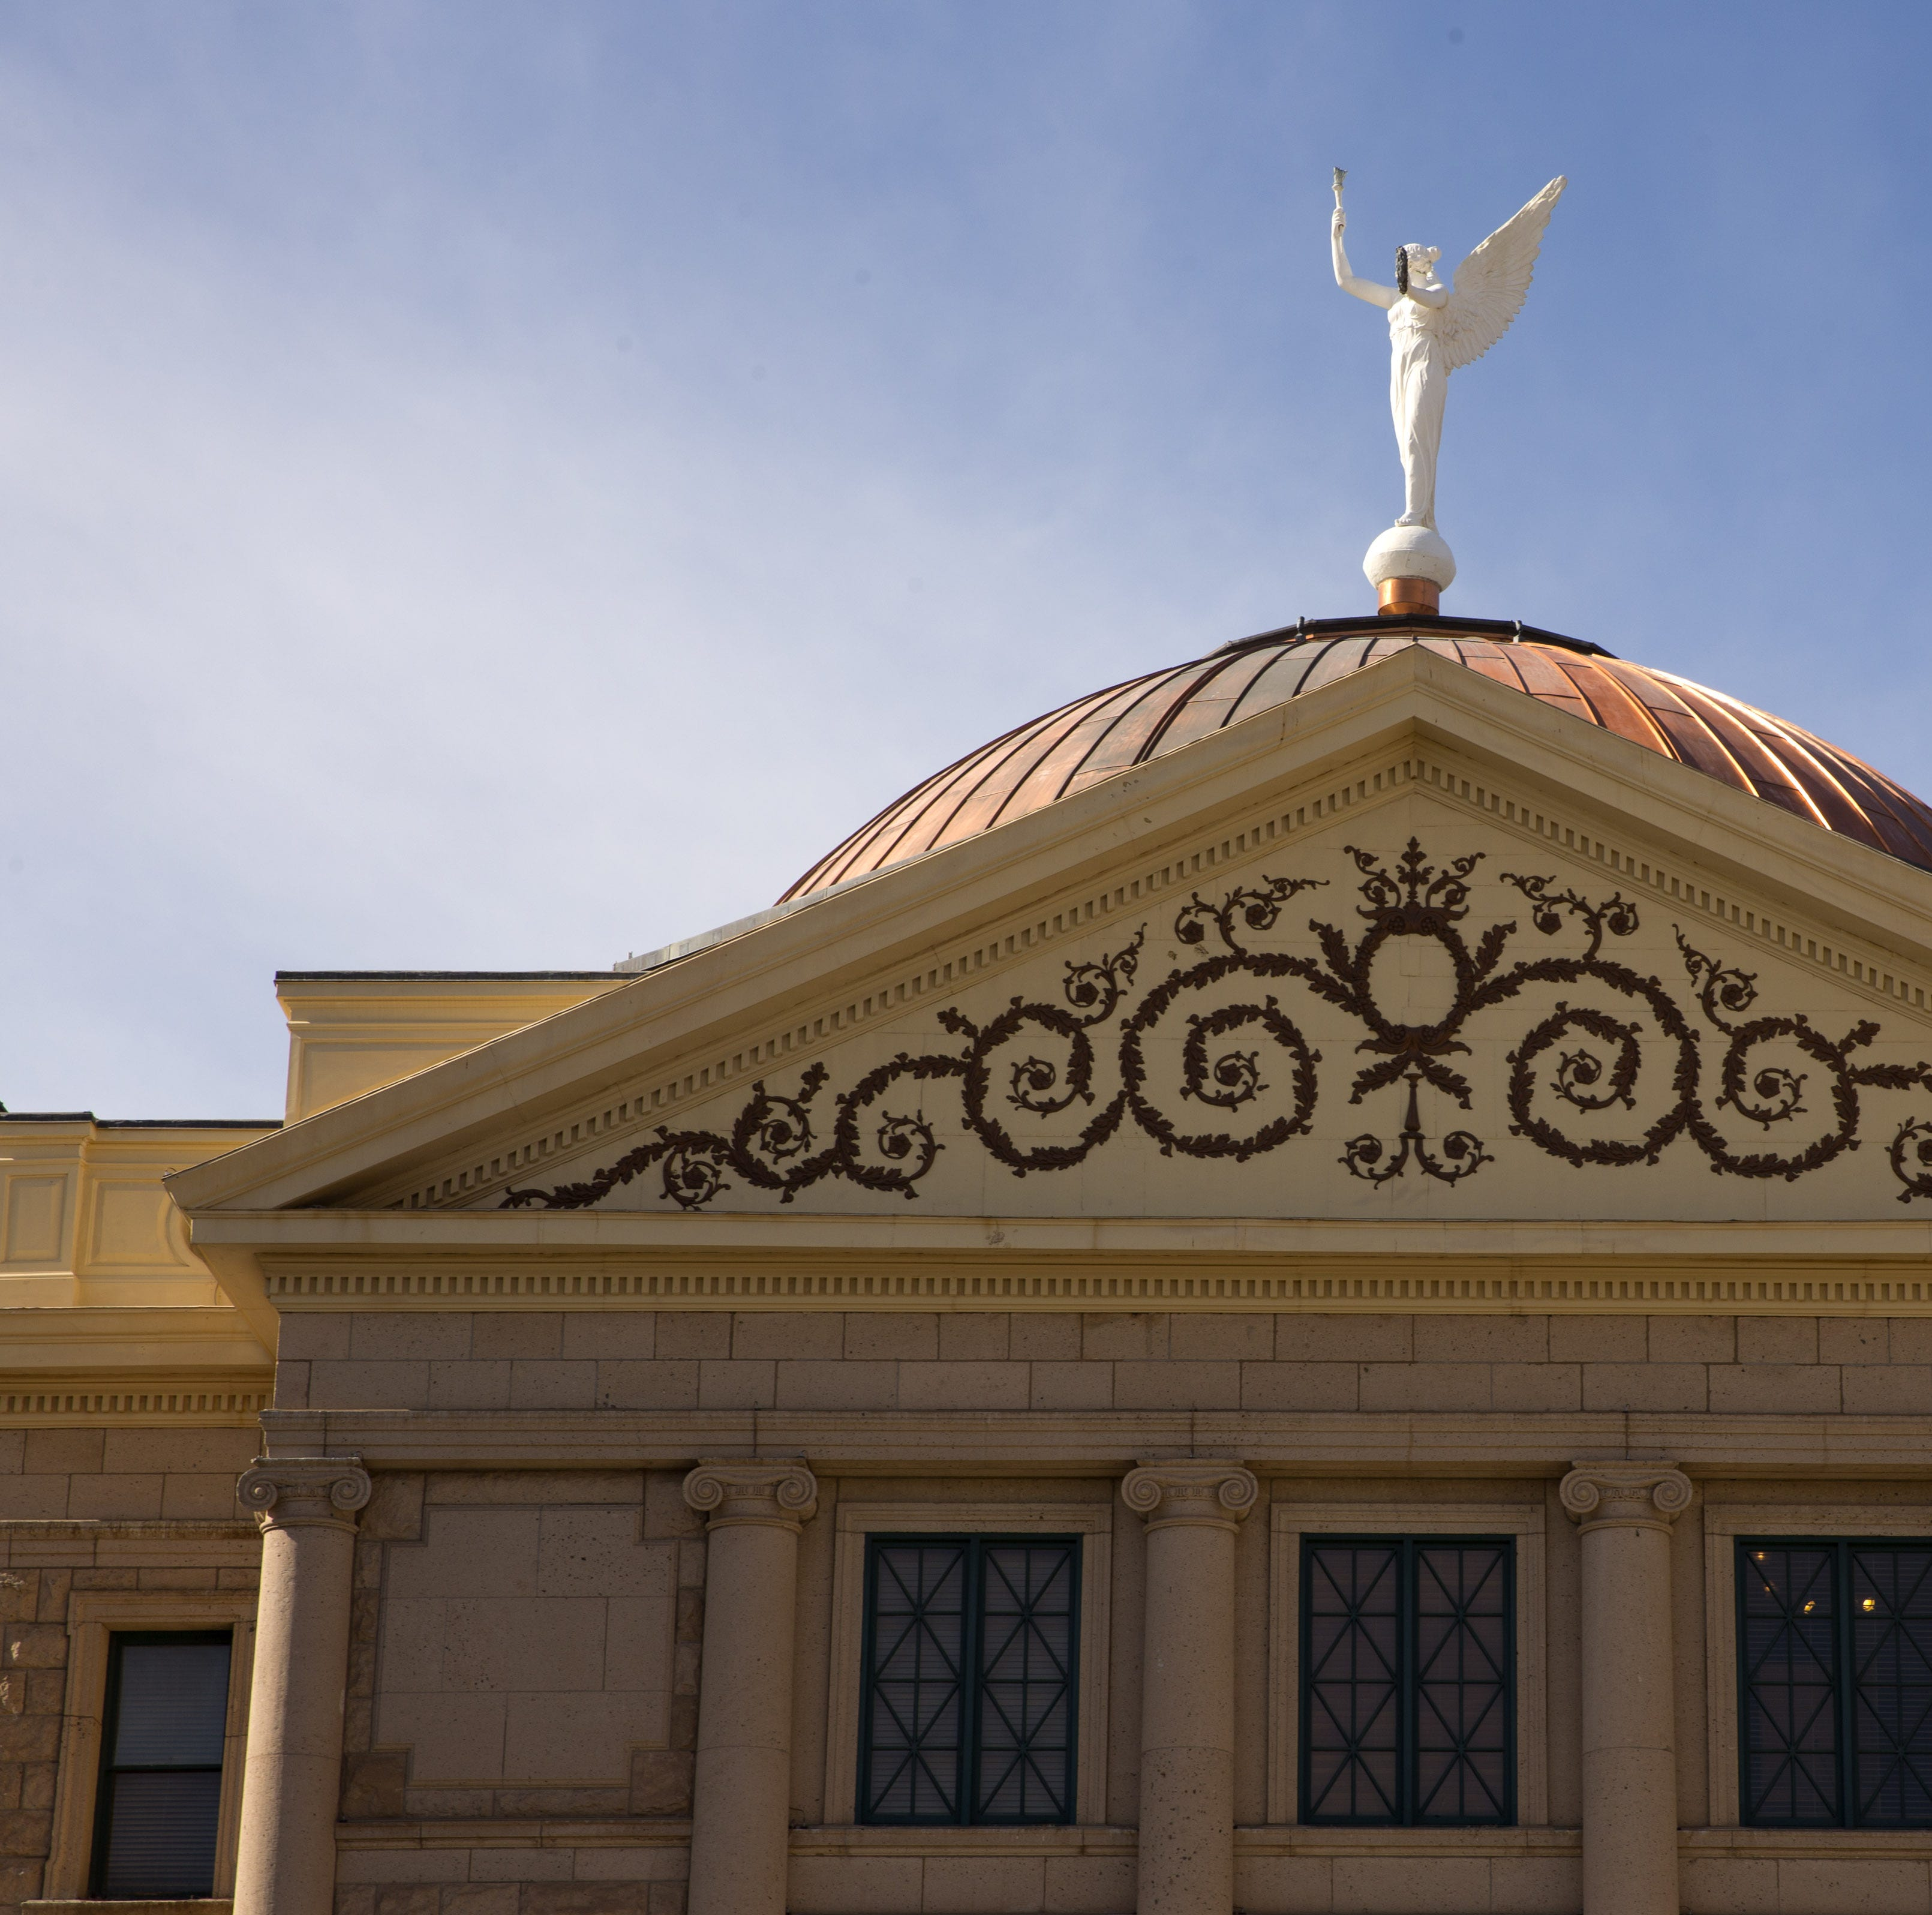 Arizona is below average for government effectiveness, new U.S. News ranking finds